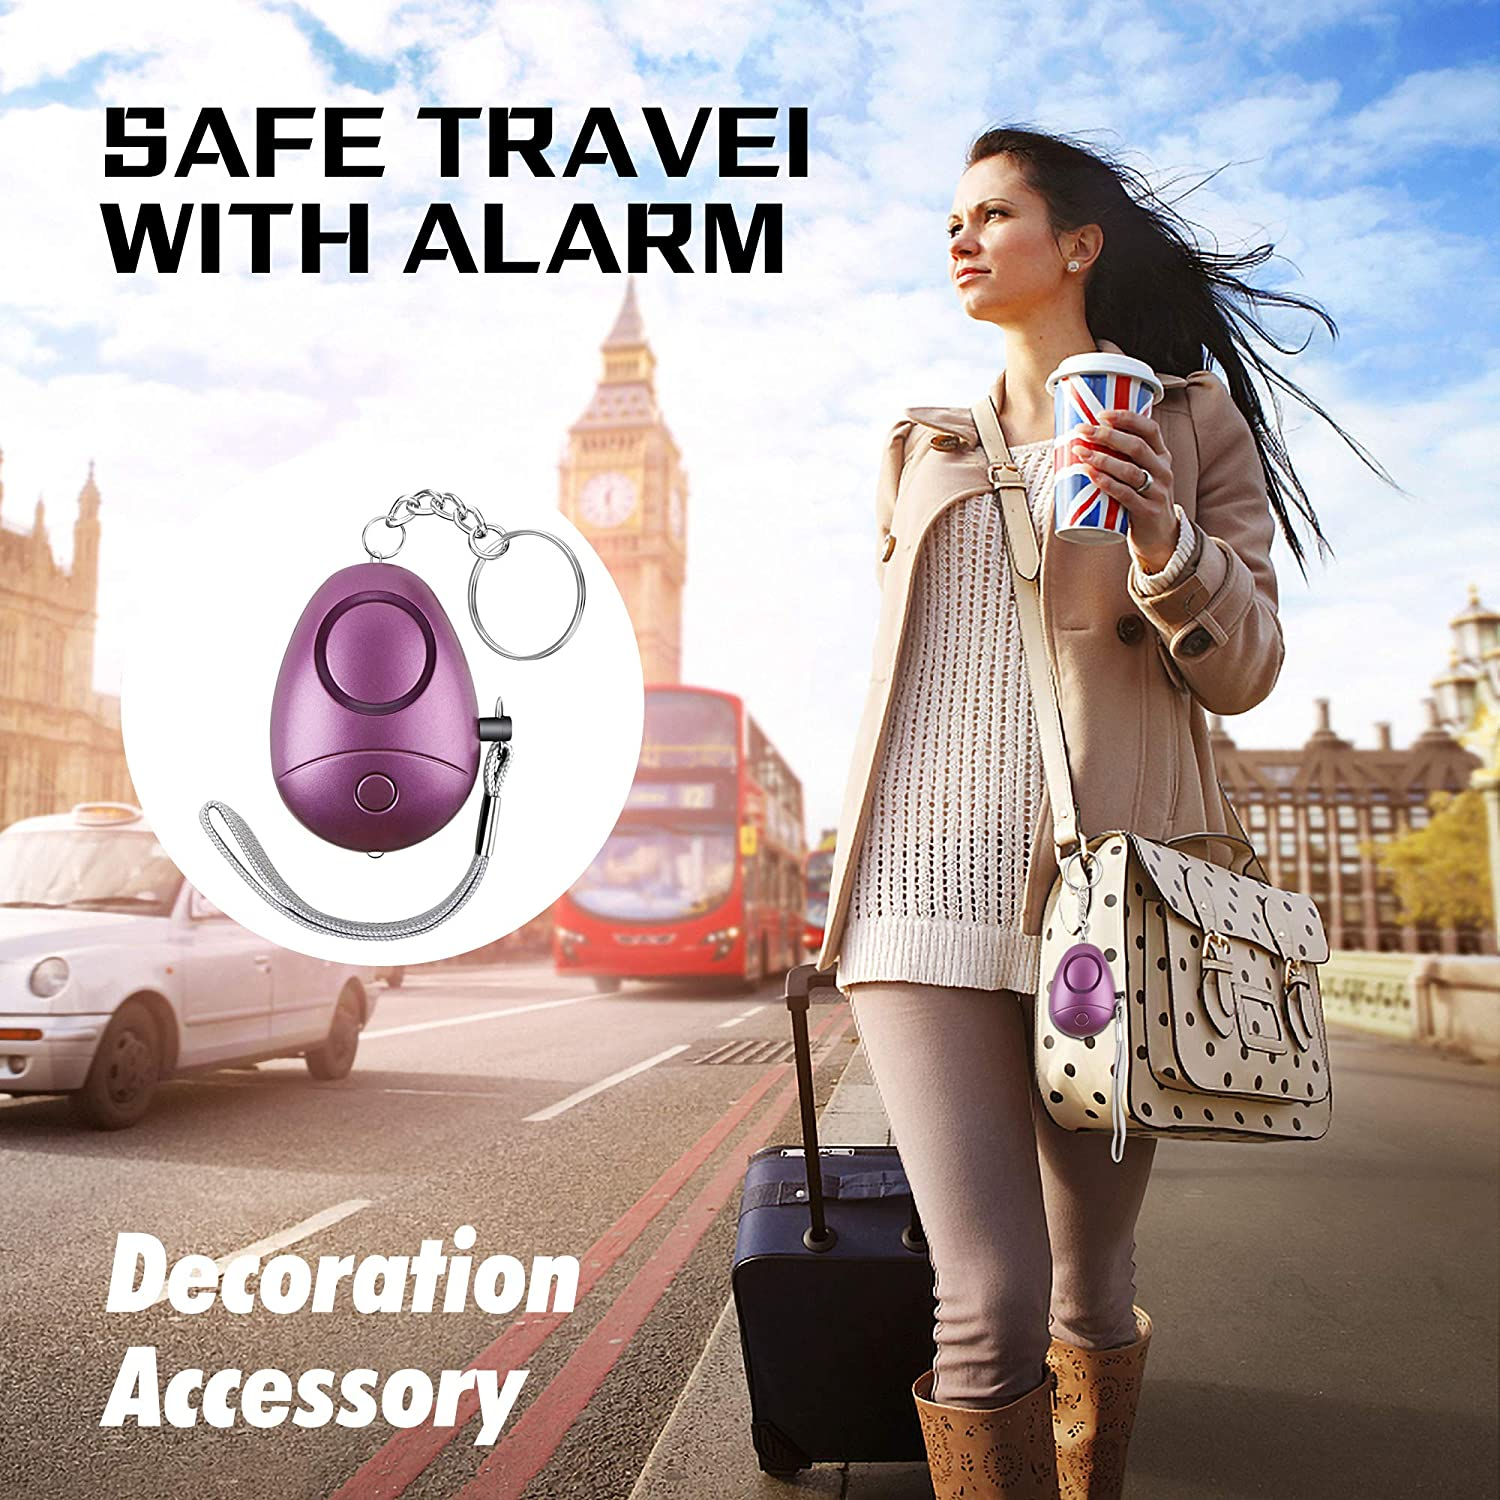 Safe Sound Security Personal Alarm for Women,Kids Personal Alarm Elderly Emergency Safe Personal Alarm with LED Flashlight Keychain,Personal Alarms-safey and Self Defense Alarm 130DB Siren Song